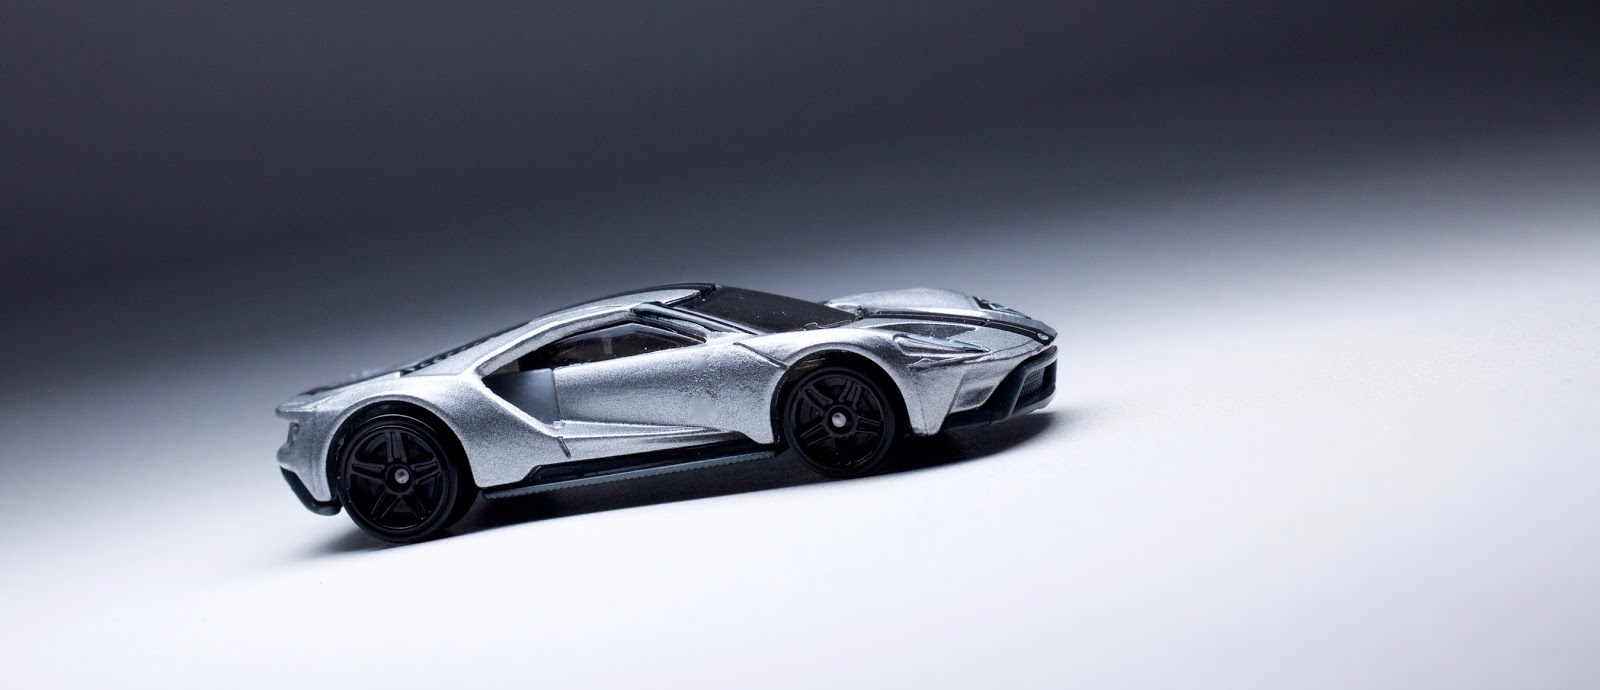 Grey With A Black Stripe And Black Rims Is A Standard Look For The Ford Gt And It Makes This Casting Look Really Good When Featuring A Model Like This